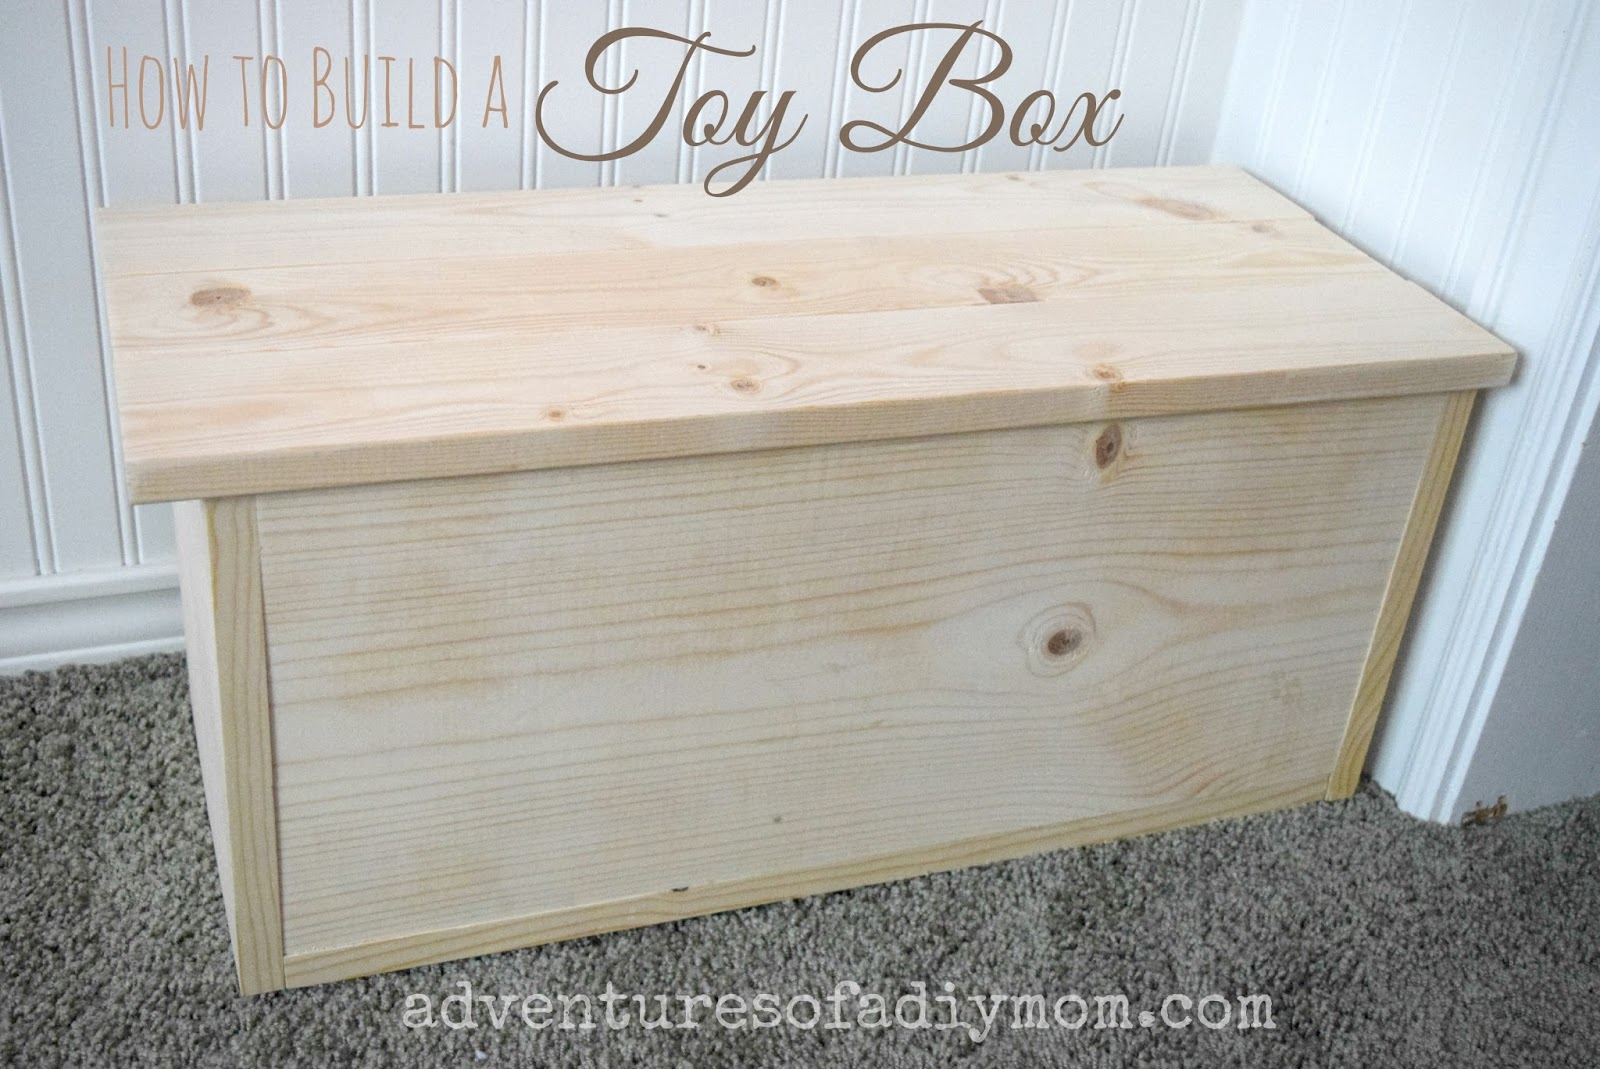 How to Build a Toy Box - Adventures of a DIY Mom